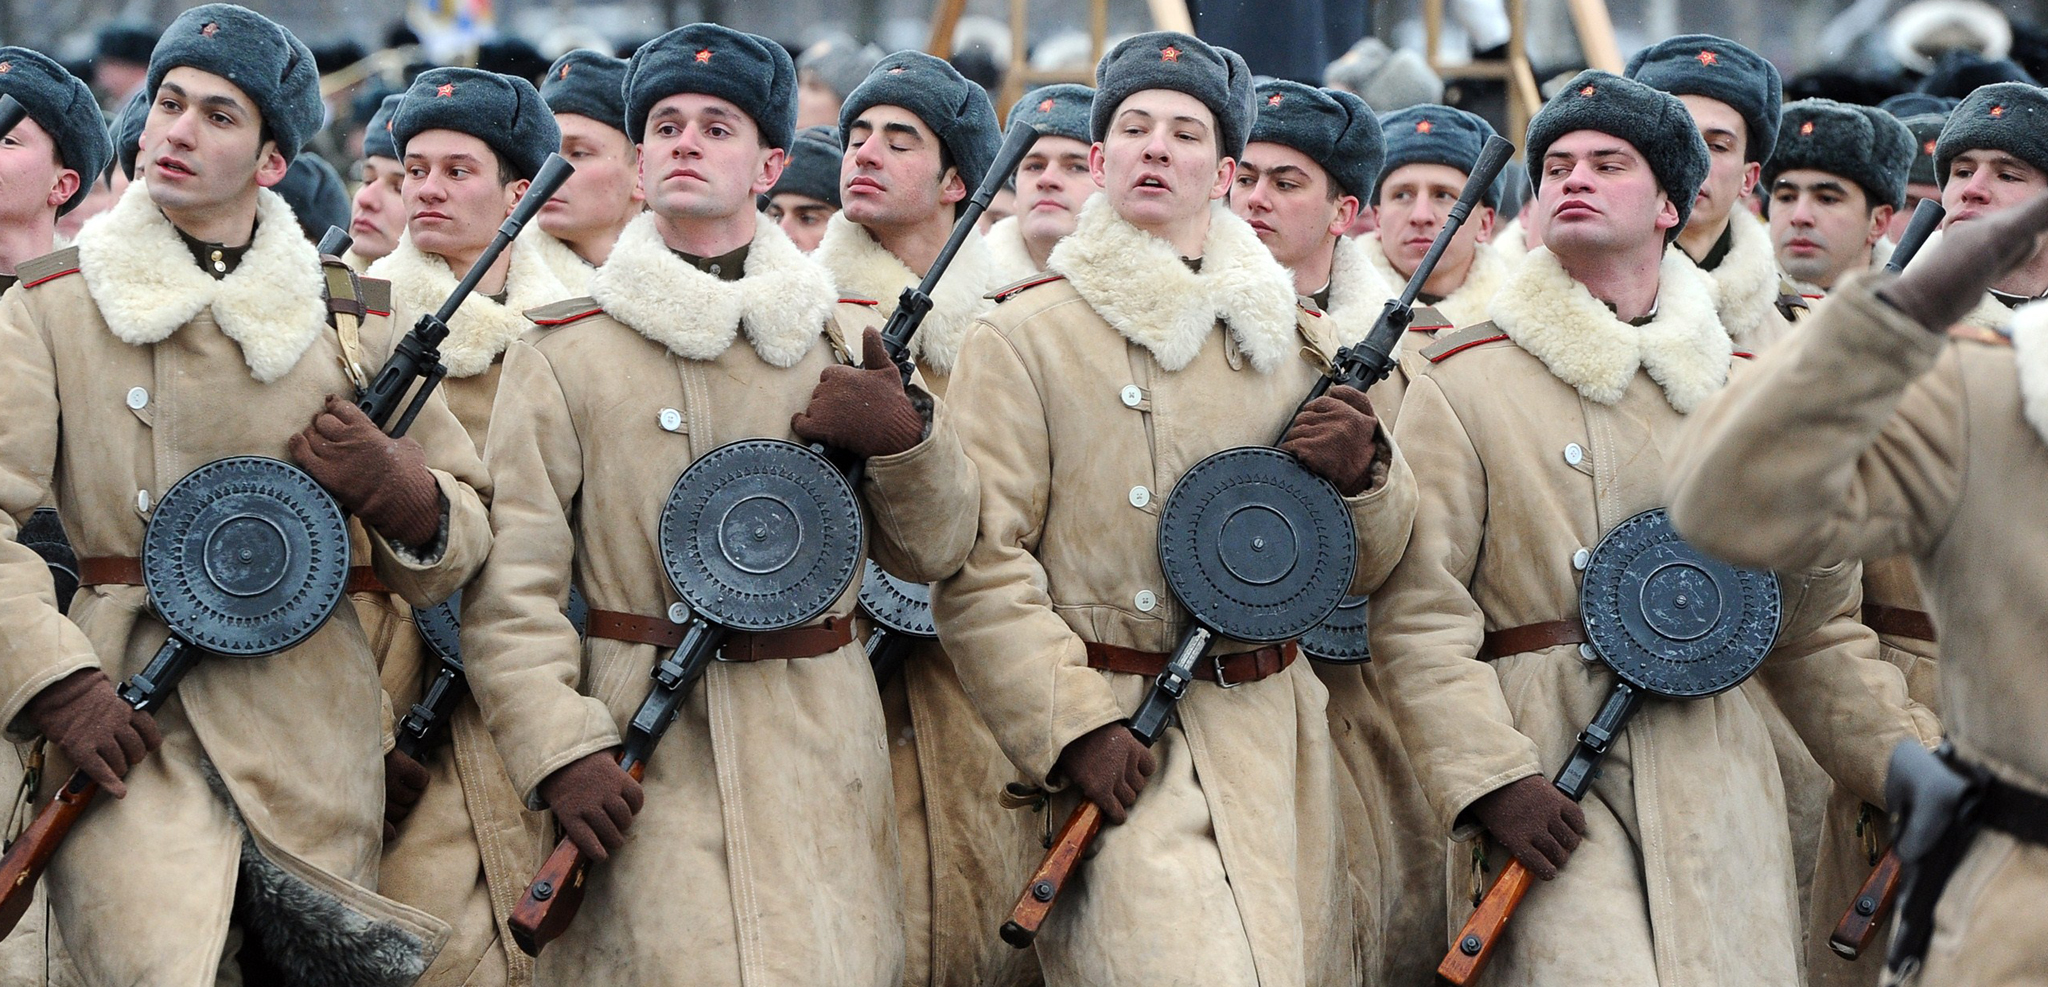 Russian soldiers wearing WWII-era Red Army winter clothing march during a military parade to mark the 70th anniversary of the final raise of the Nazi blockade of the city Leningrad, now St. Petersburg. The German and Finnish siege and blockade of Leningrad was broken on January 18, 1943 but finally lifted a year after, on January 27, 1944.